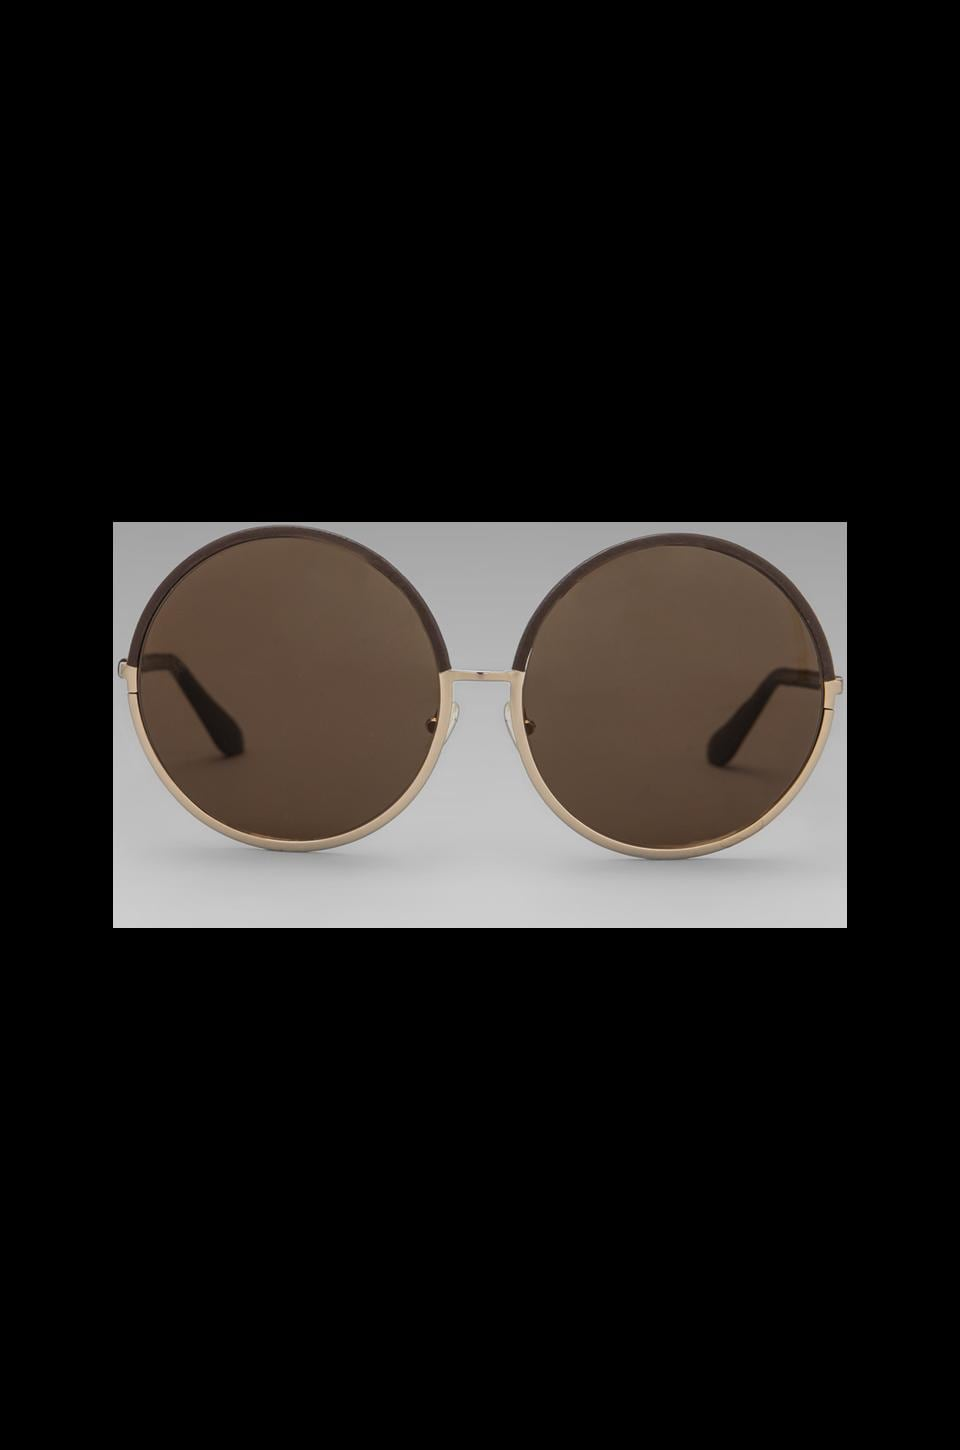 House of Harlow Imagine Sunglasses in Brown